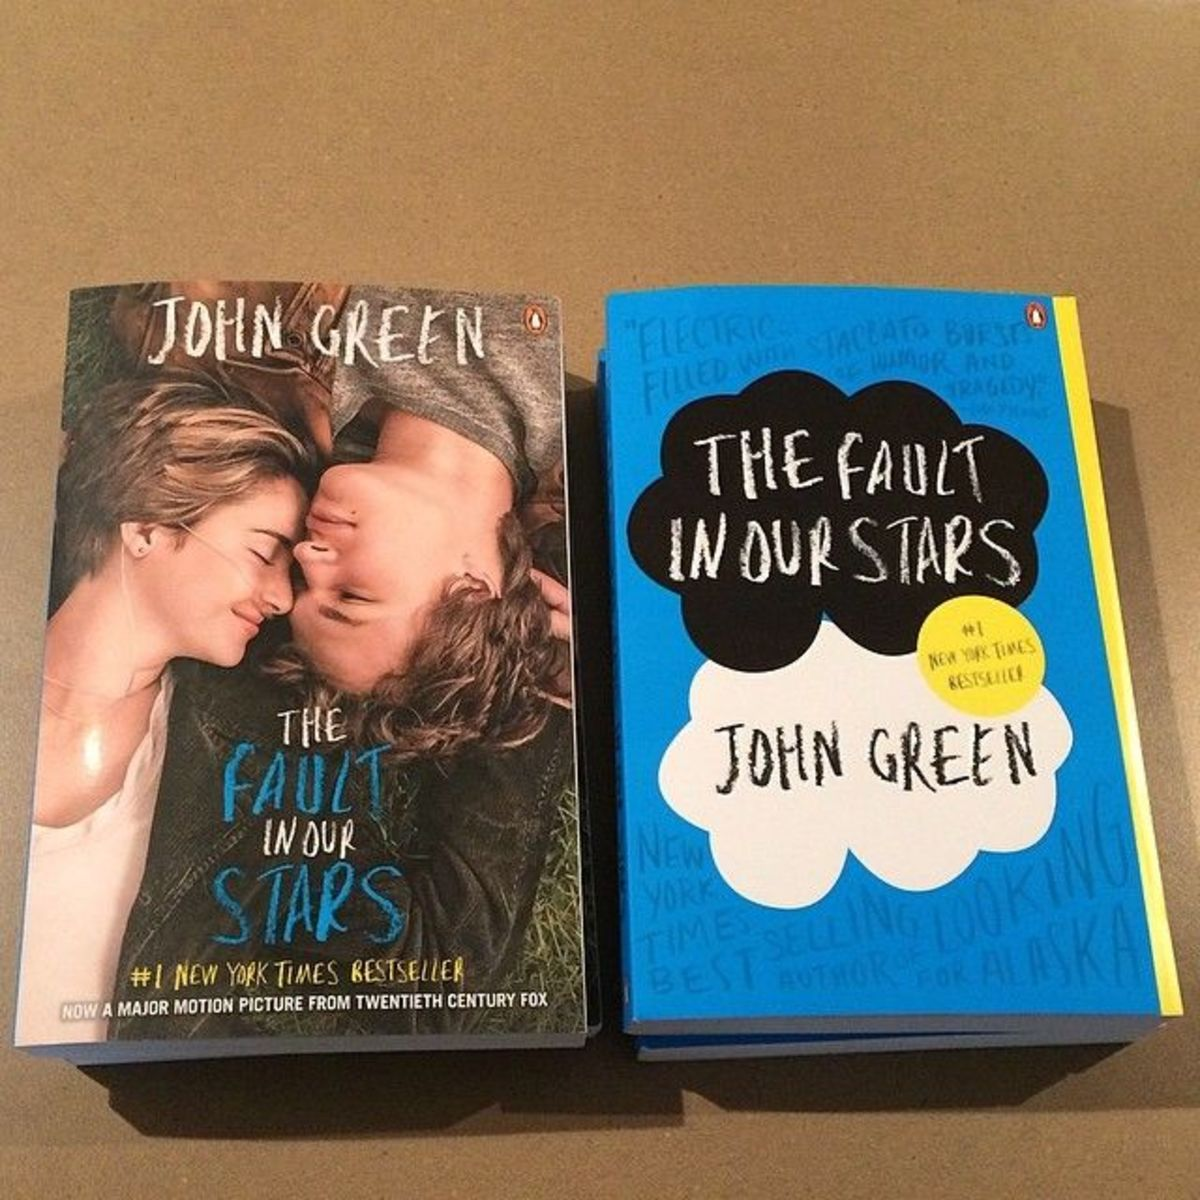 Reflections After Watching and Reading 'The Fault in Our Stars'